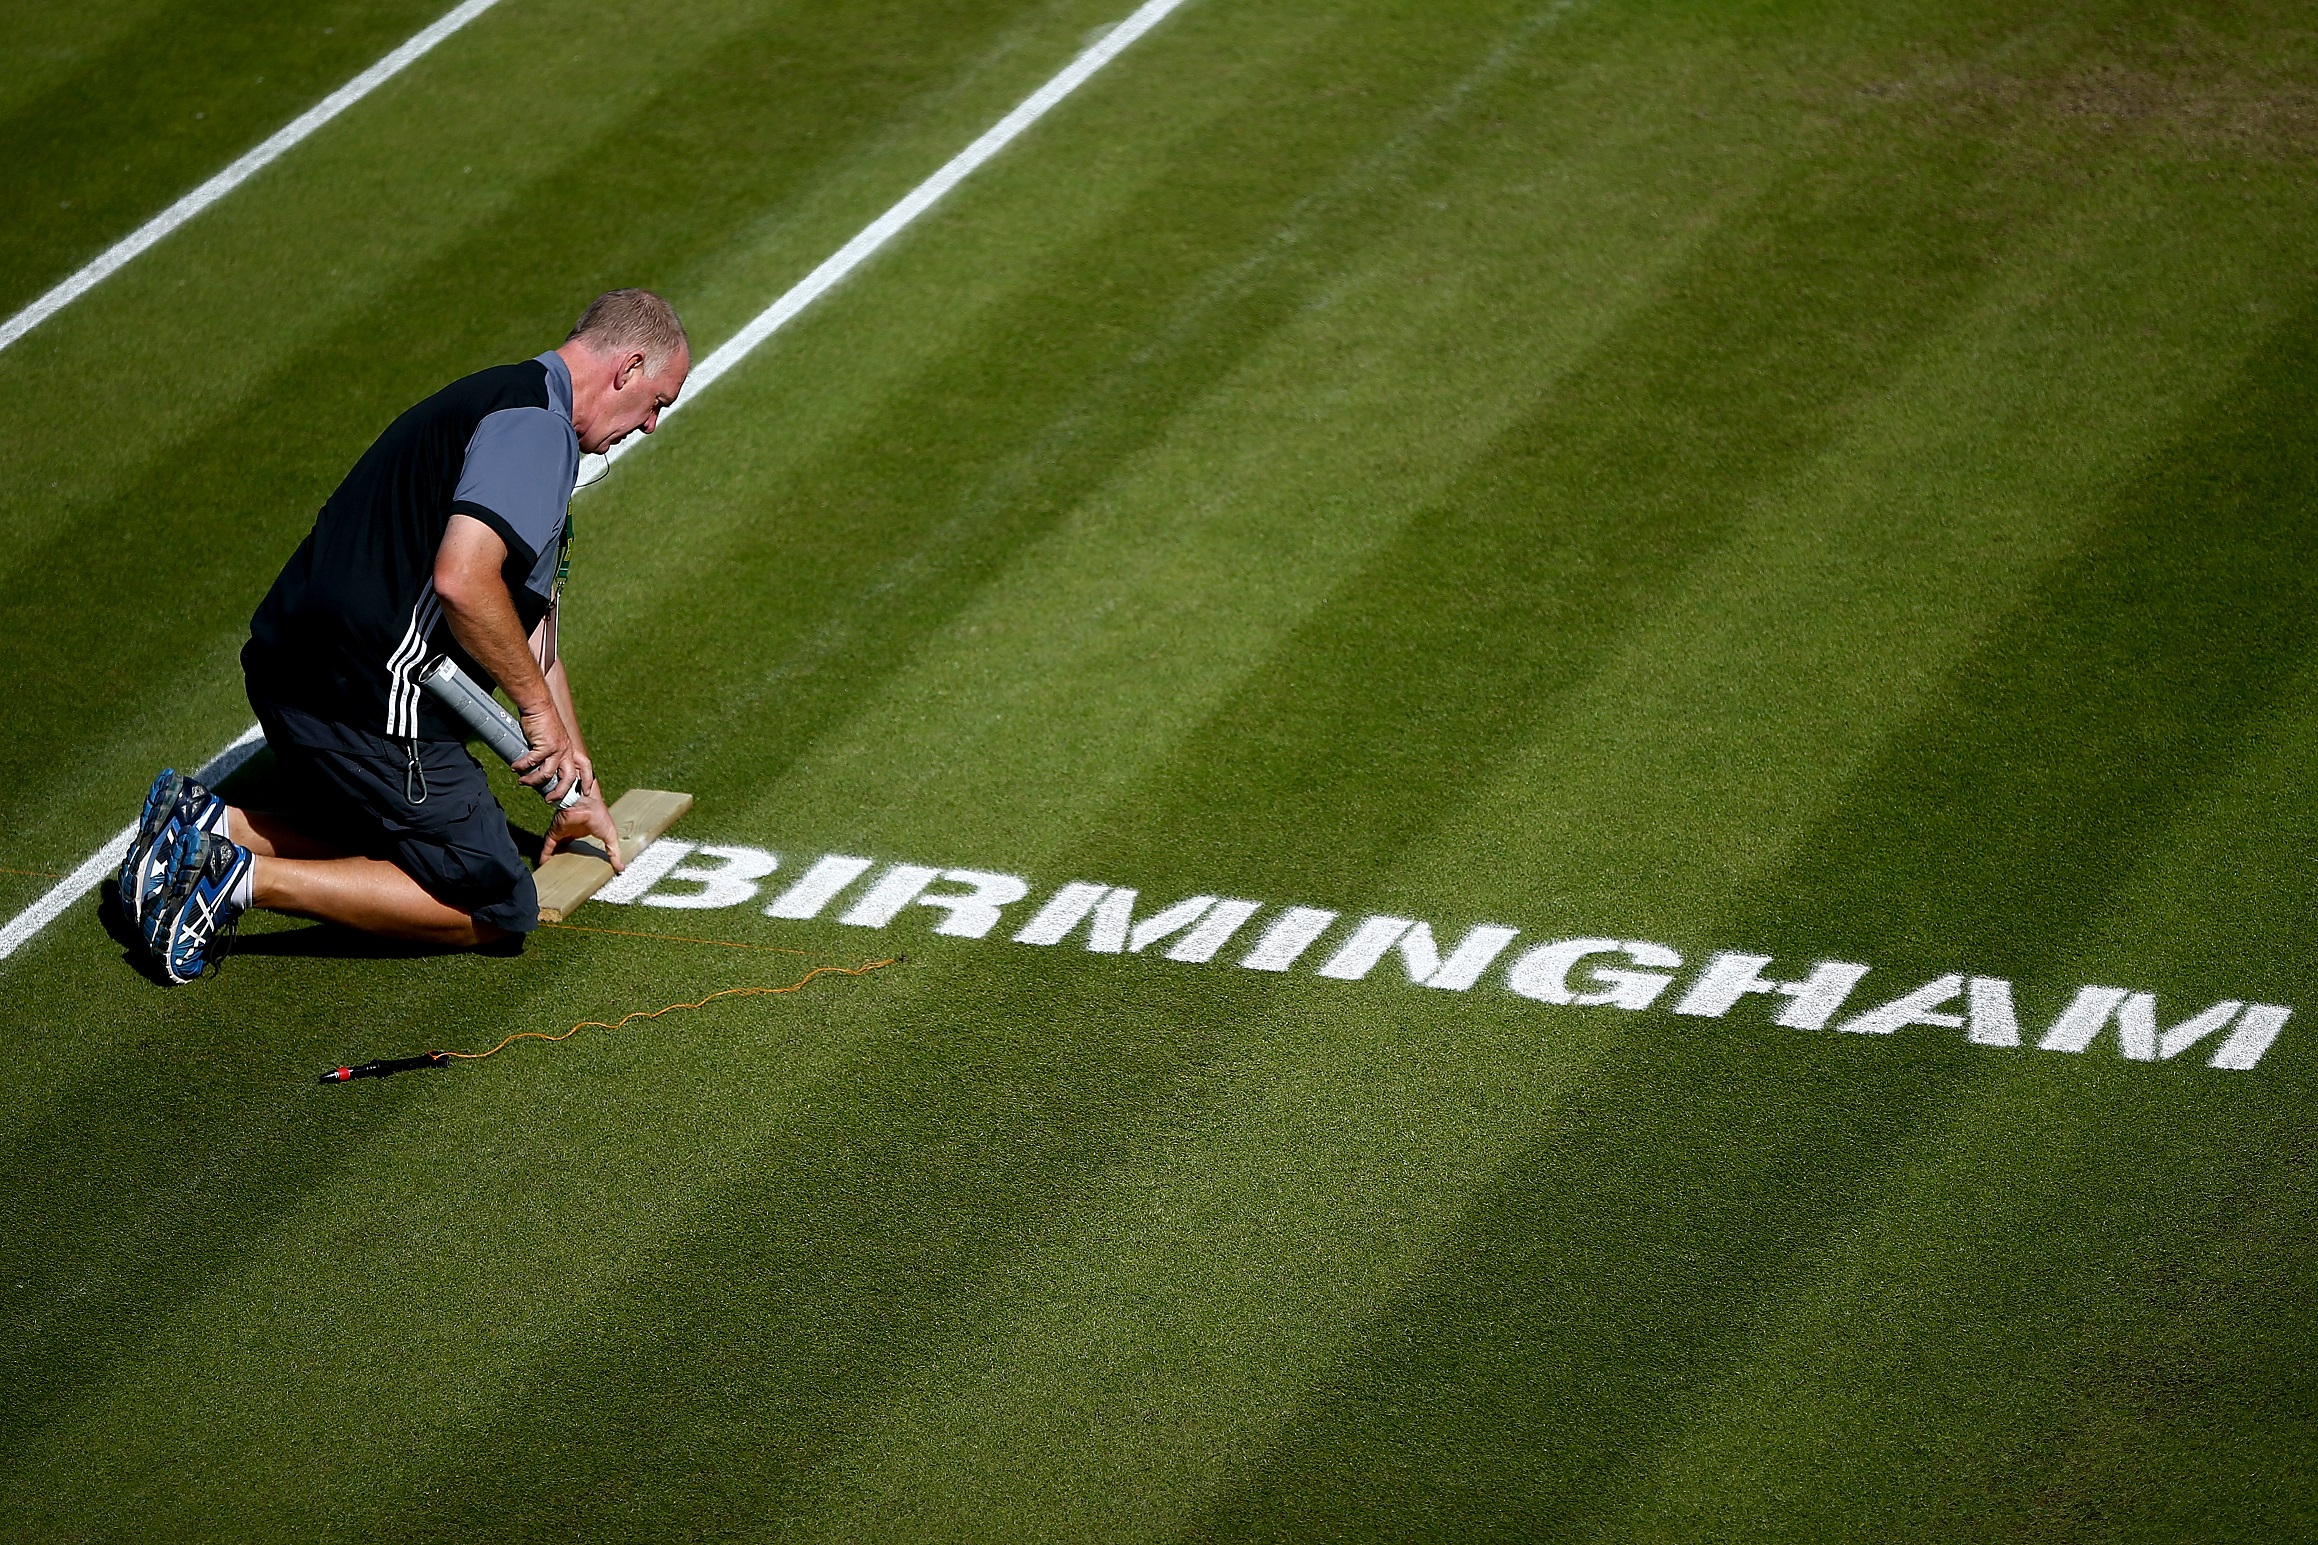 Groundstaff prepare the courts ahead of the start of play on Day Nine